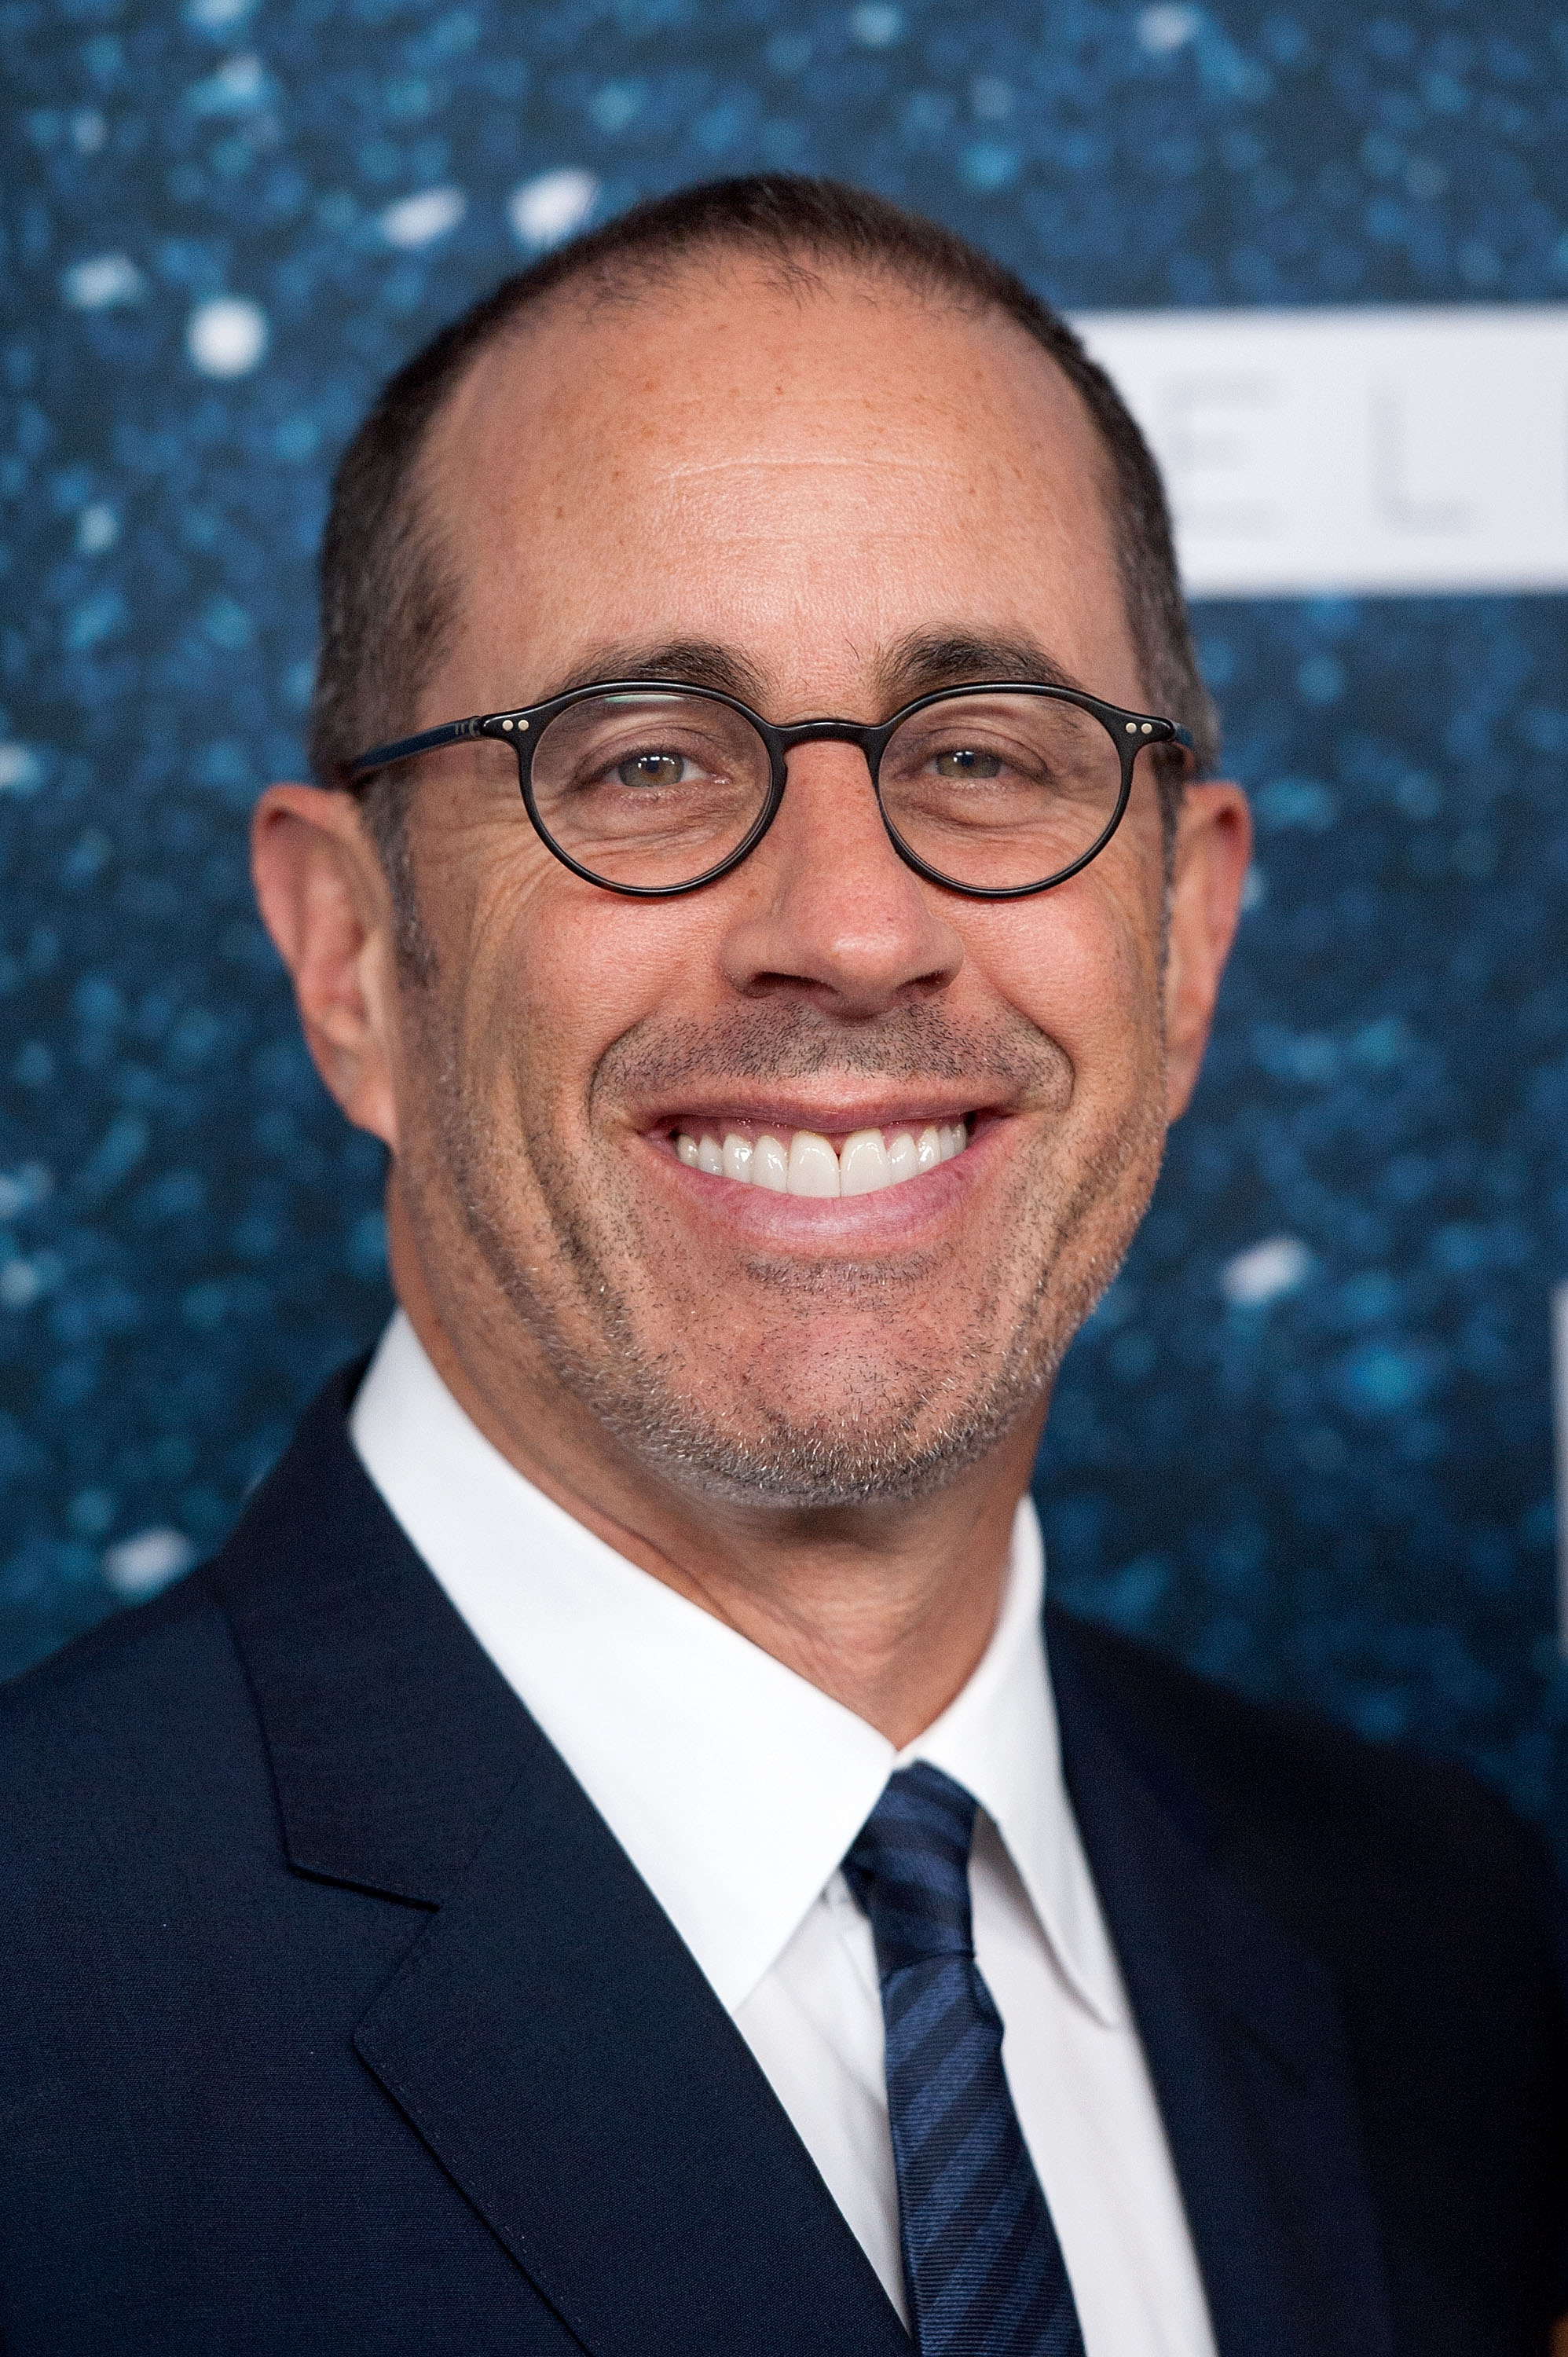 Comedian Jerry Seinfeld - age: 66